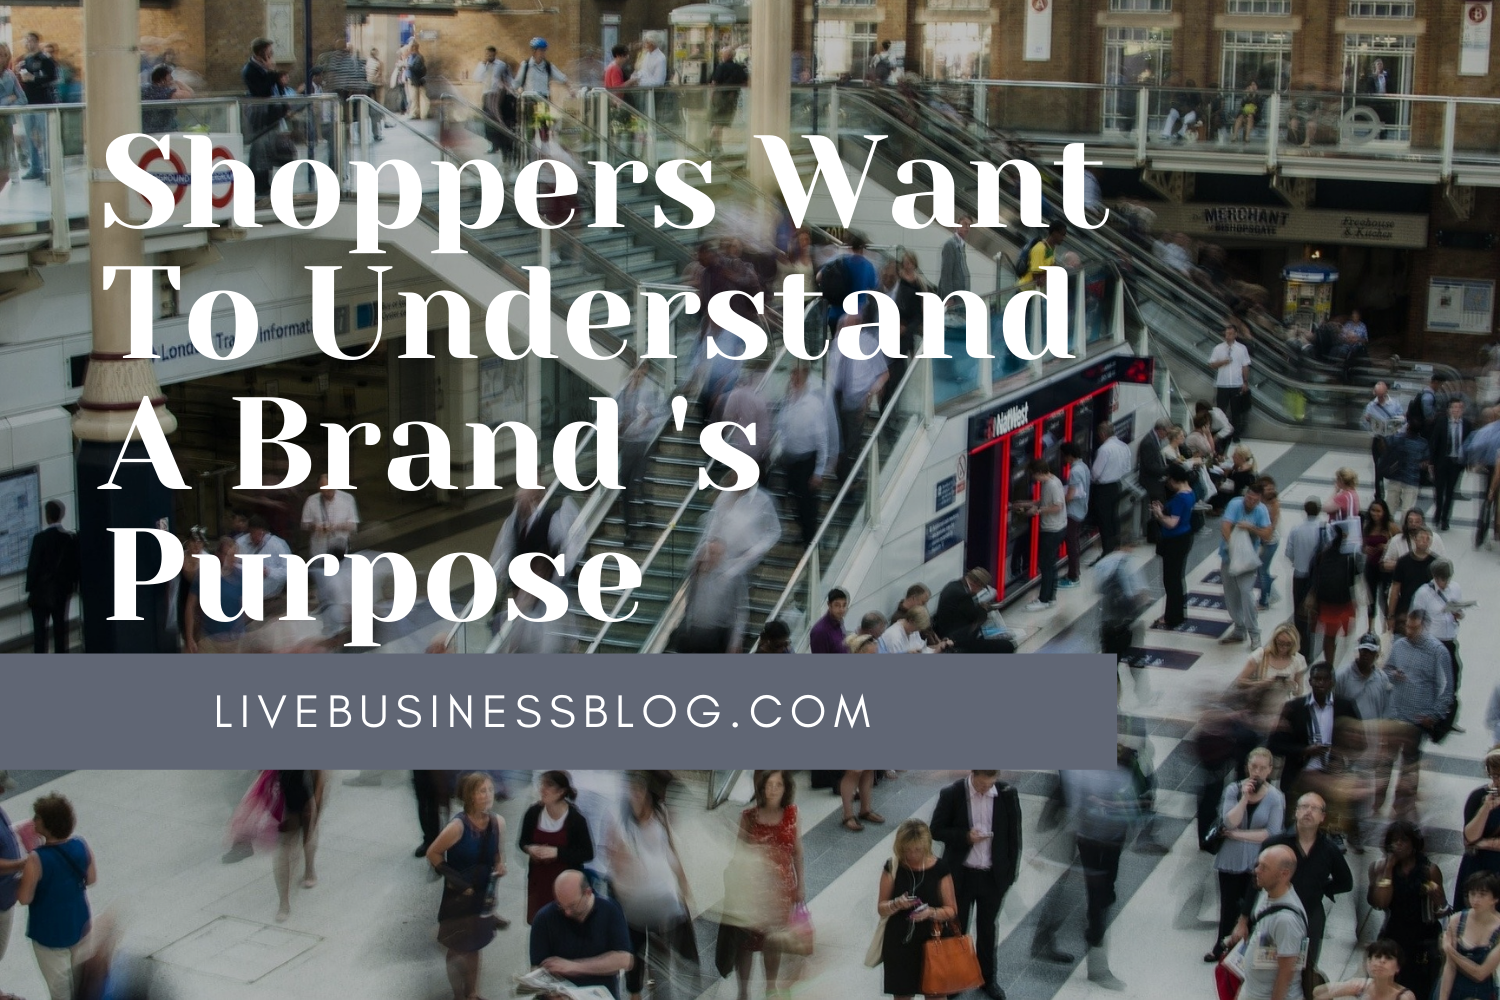 Shoppers want to understand a Brand Purpose